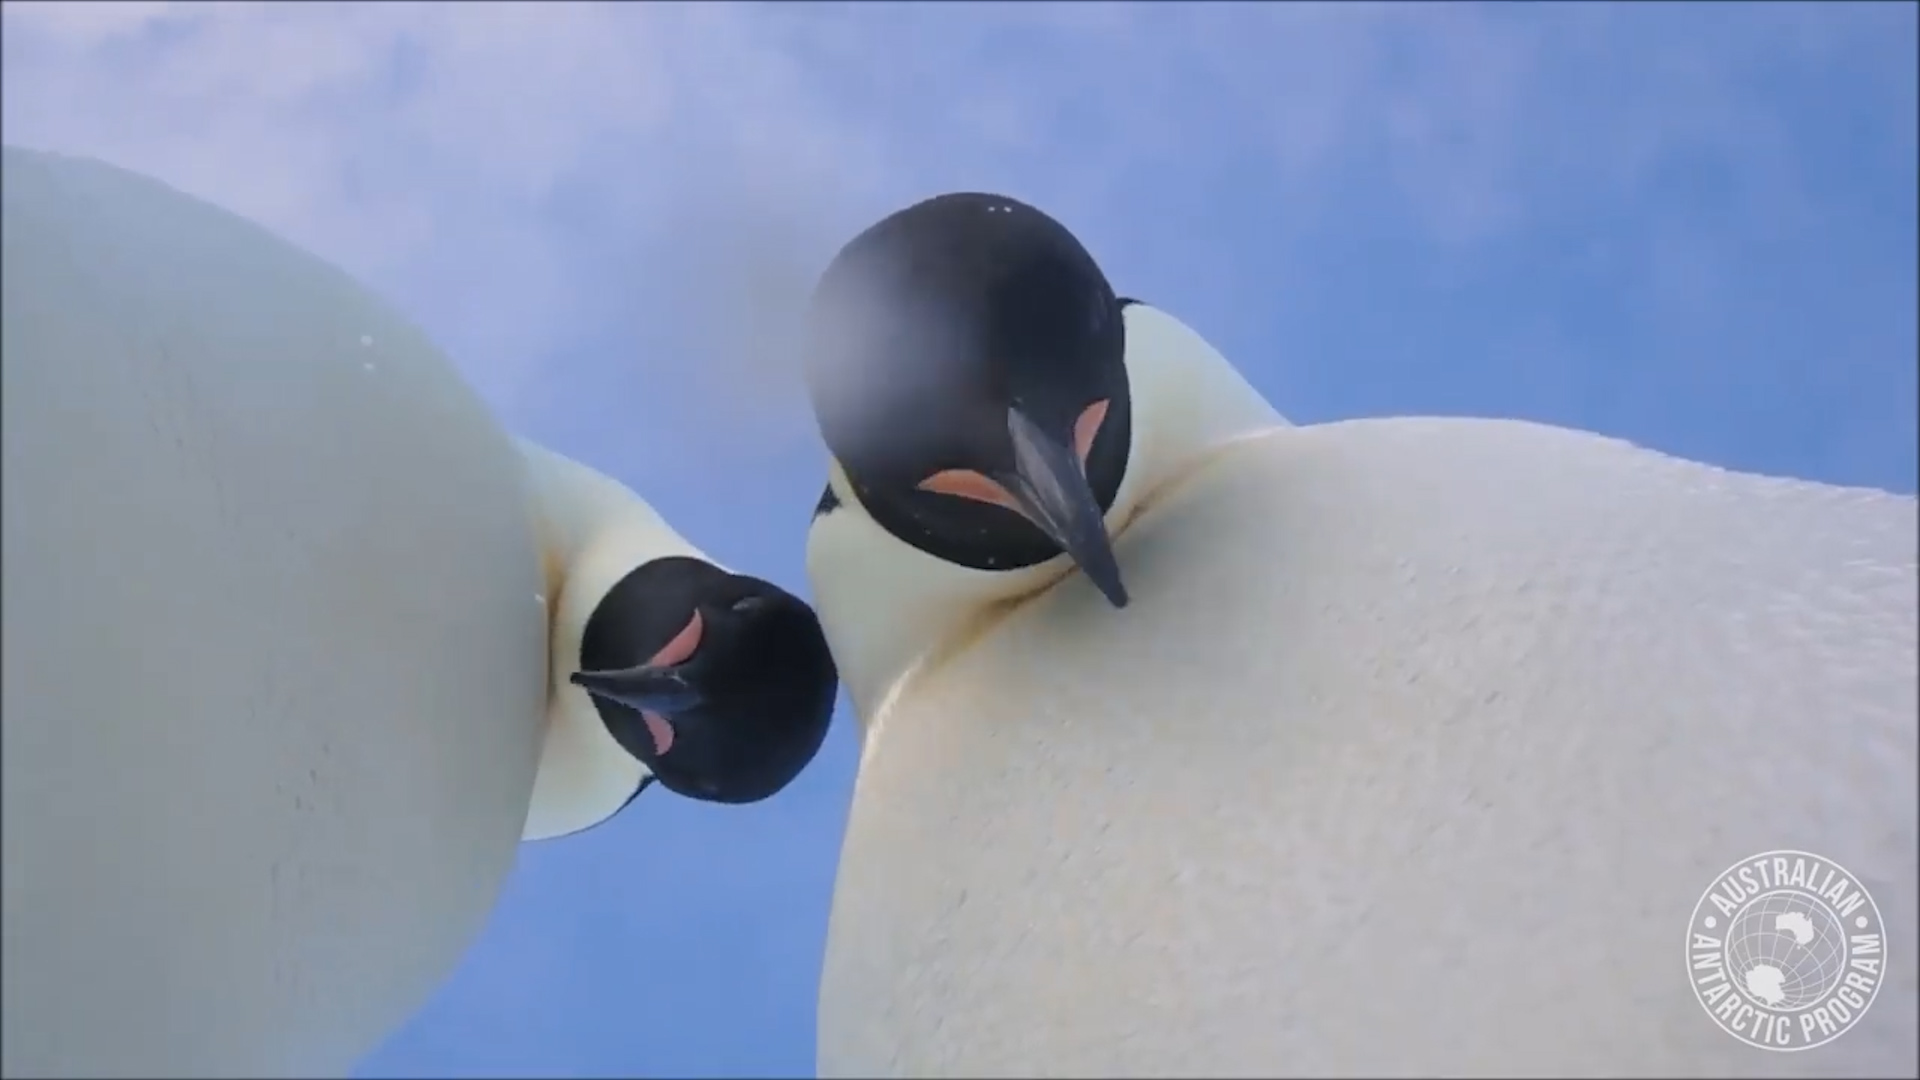 Penguins find camera, take awesome selfie